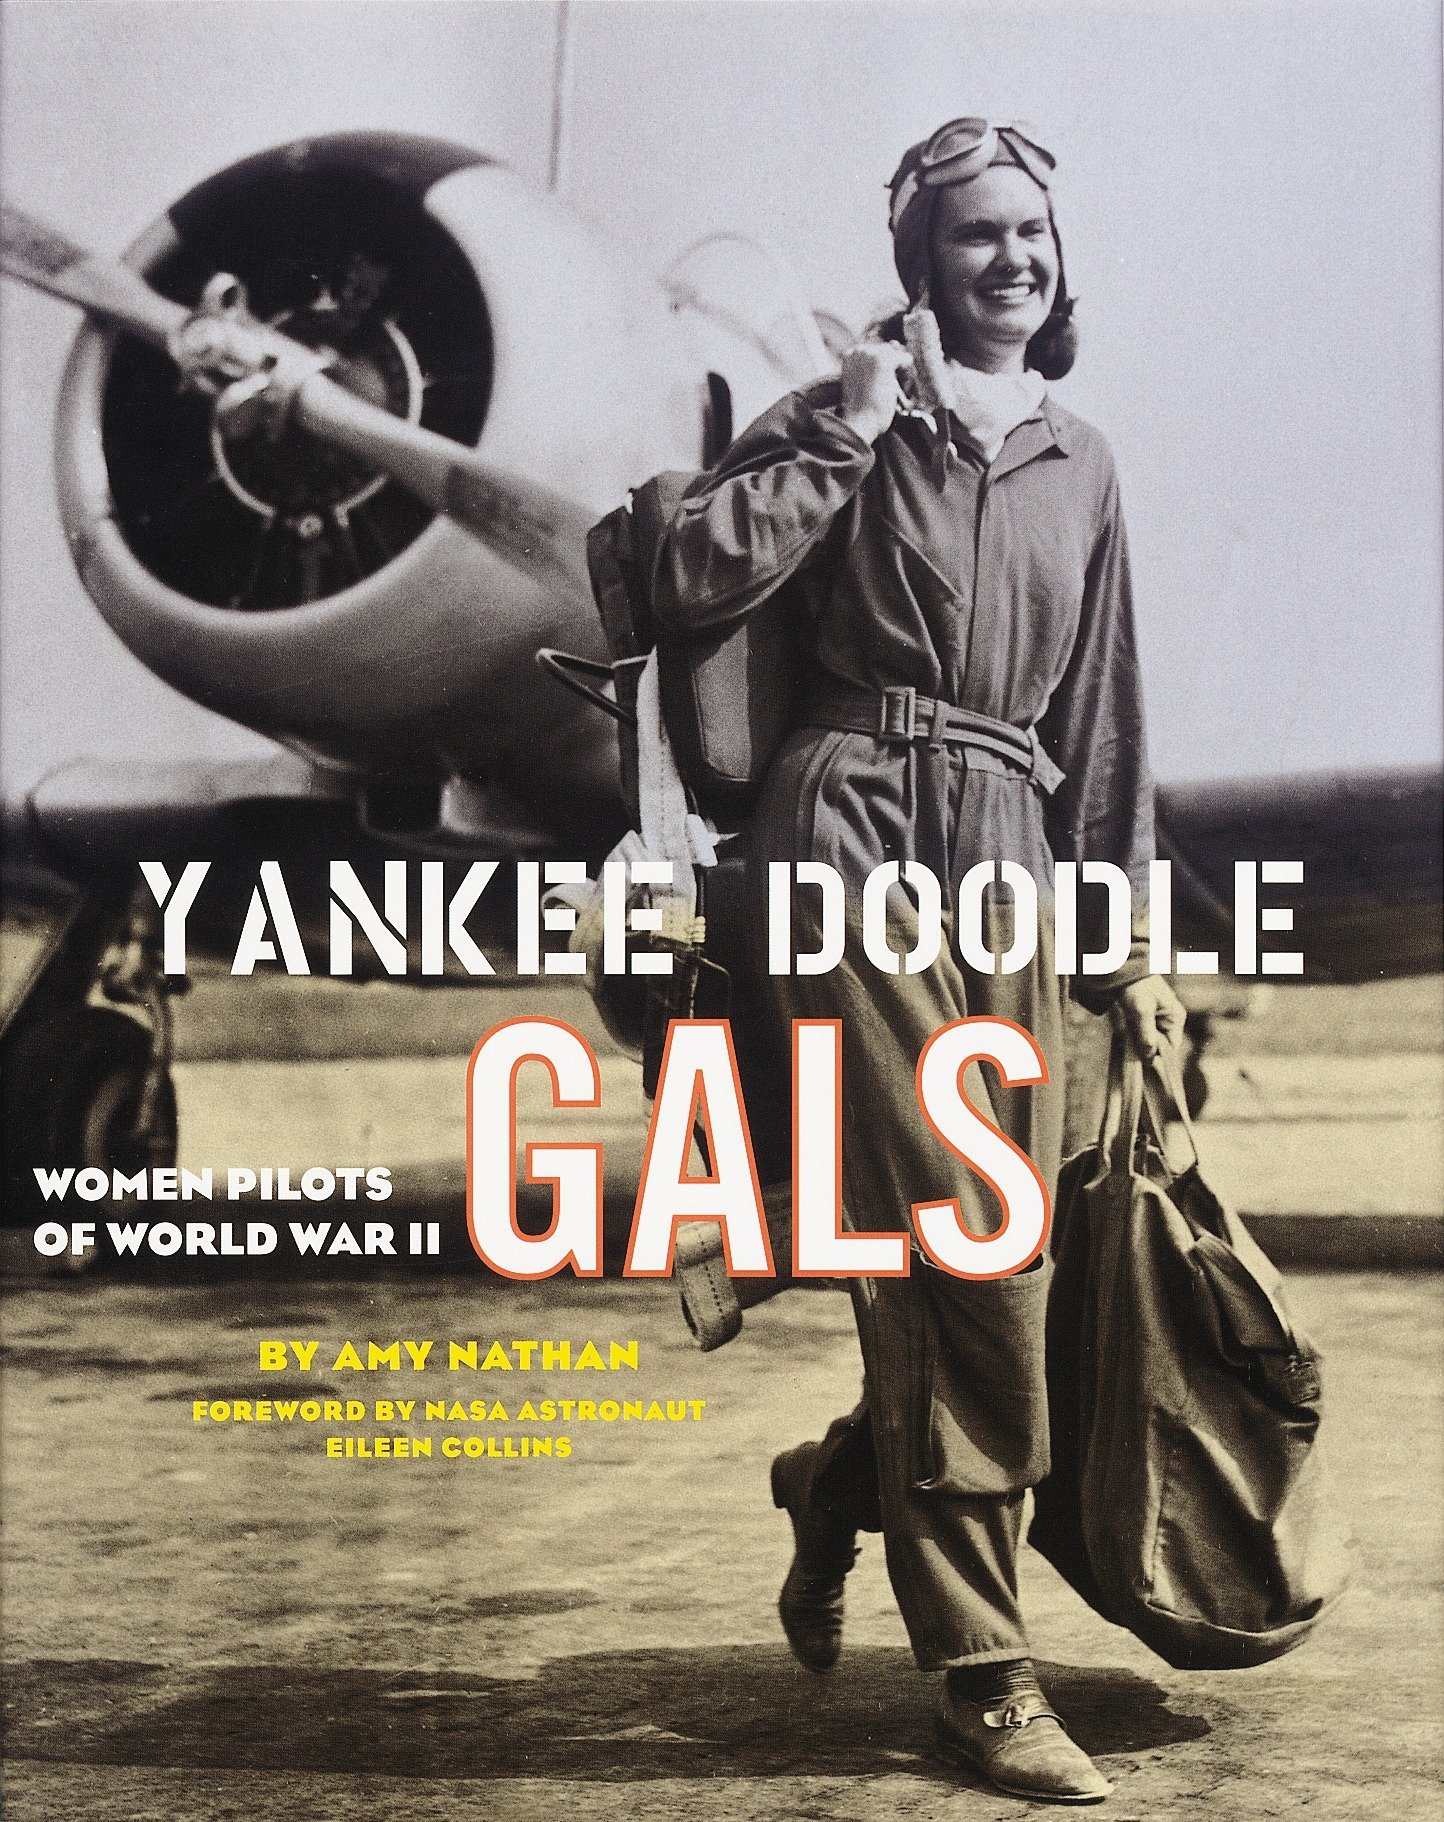 Yankee Doodle Gals: Women Pilots of World War II